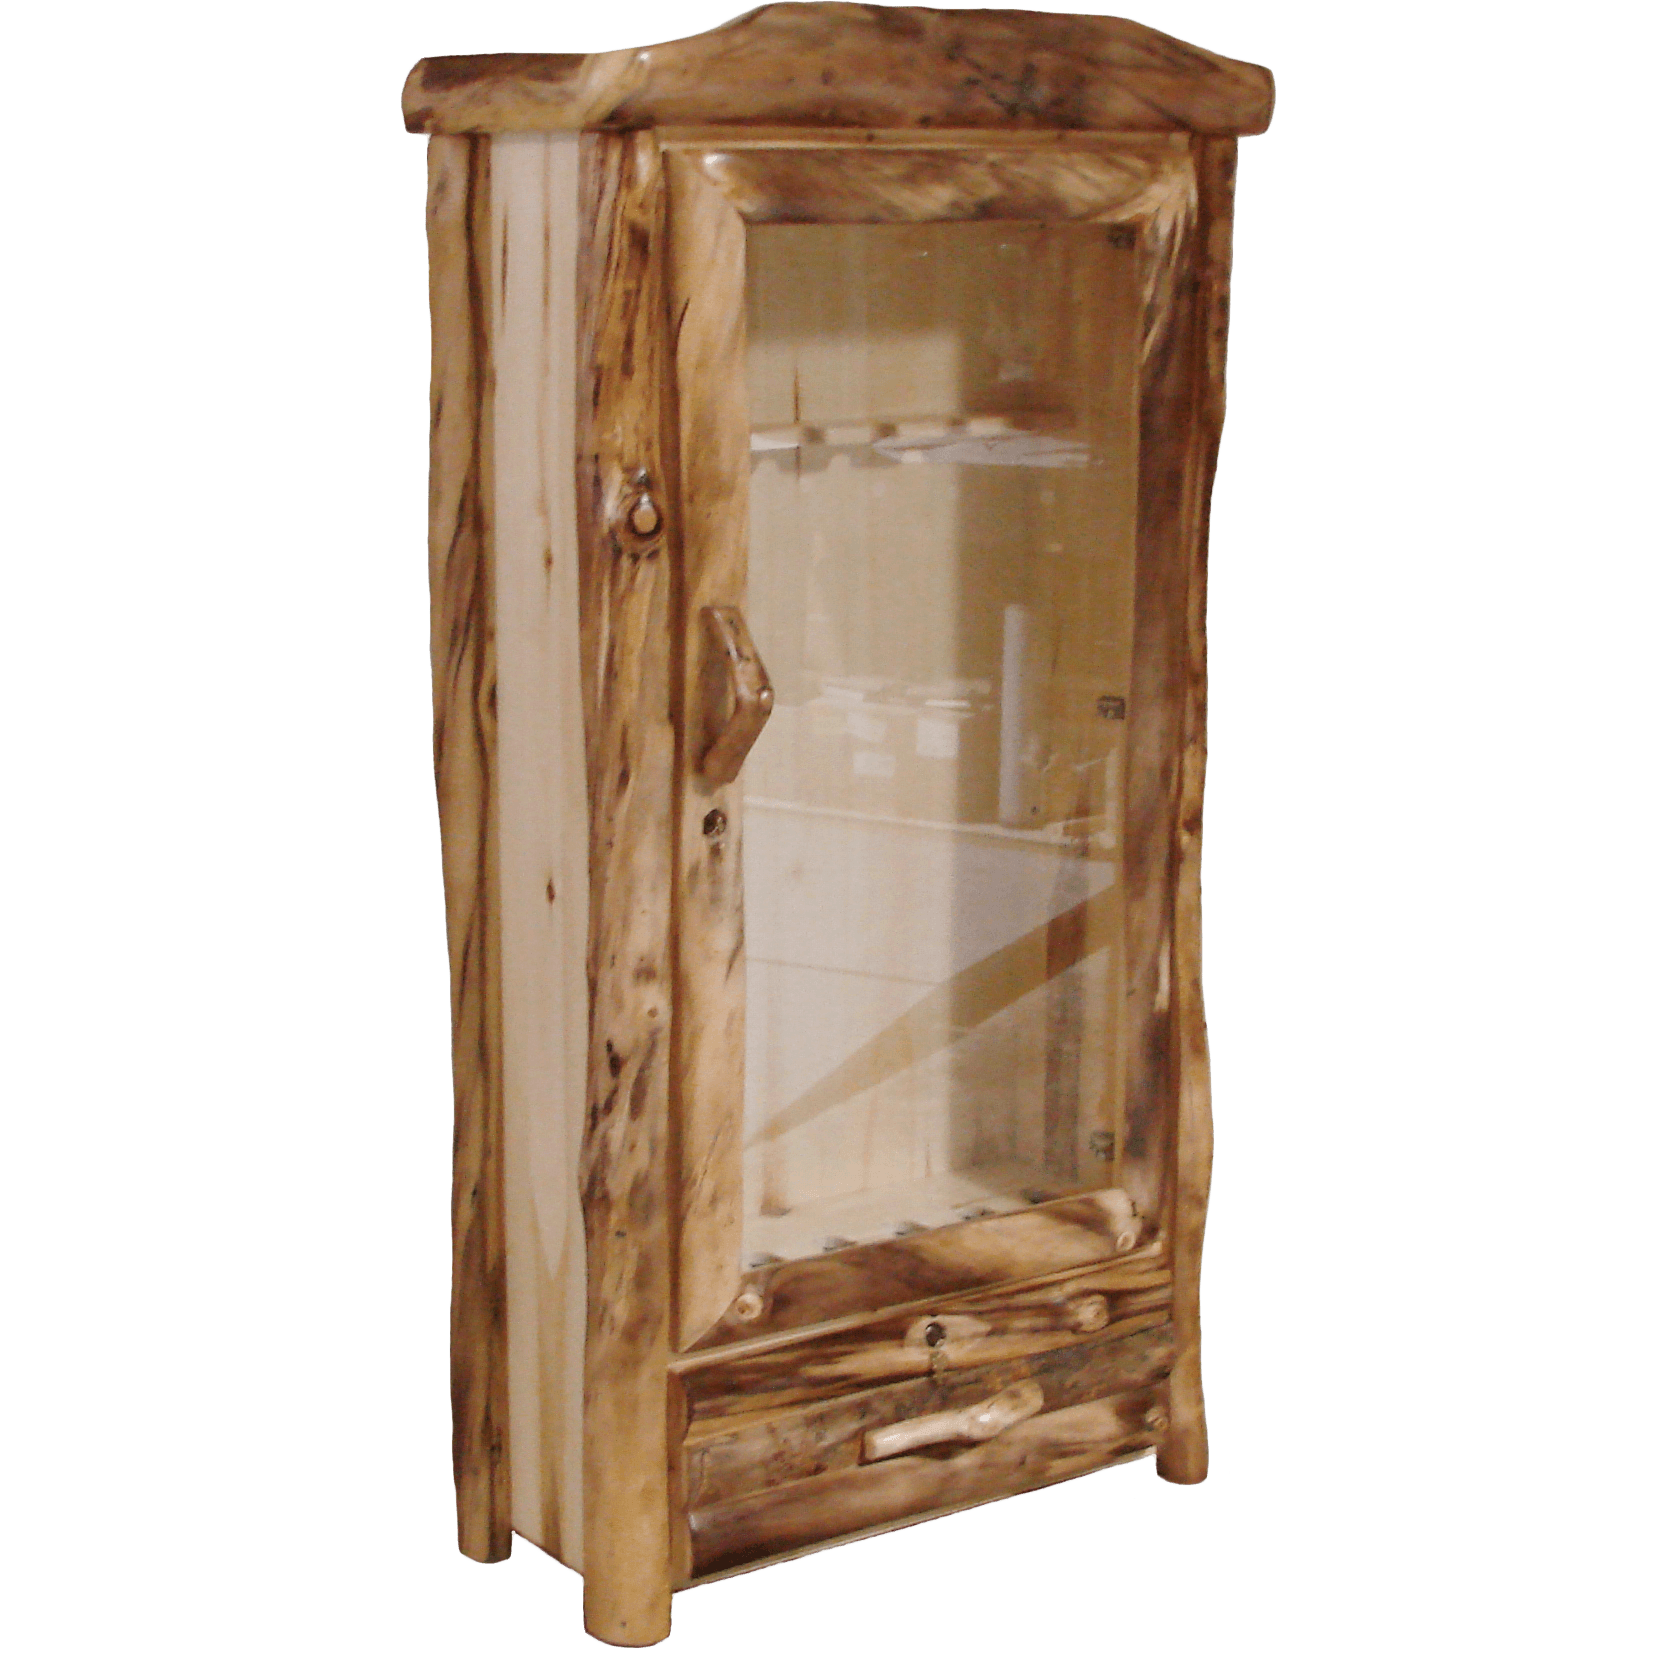 Aspen Log 1 Drawer Gun Cabinet  sc 1 st  Rustic Log Furniture of Utah & Aspen Log 1 Drawer Gun Cabinet | Rustic Log Furniture of Utah